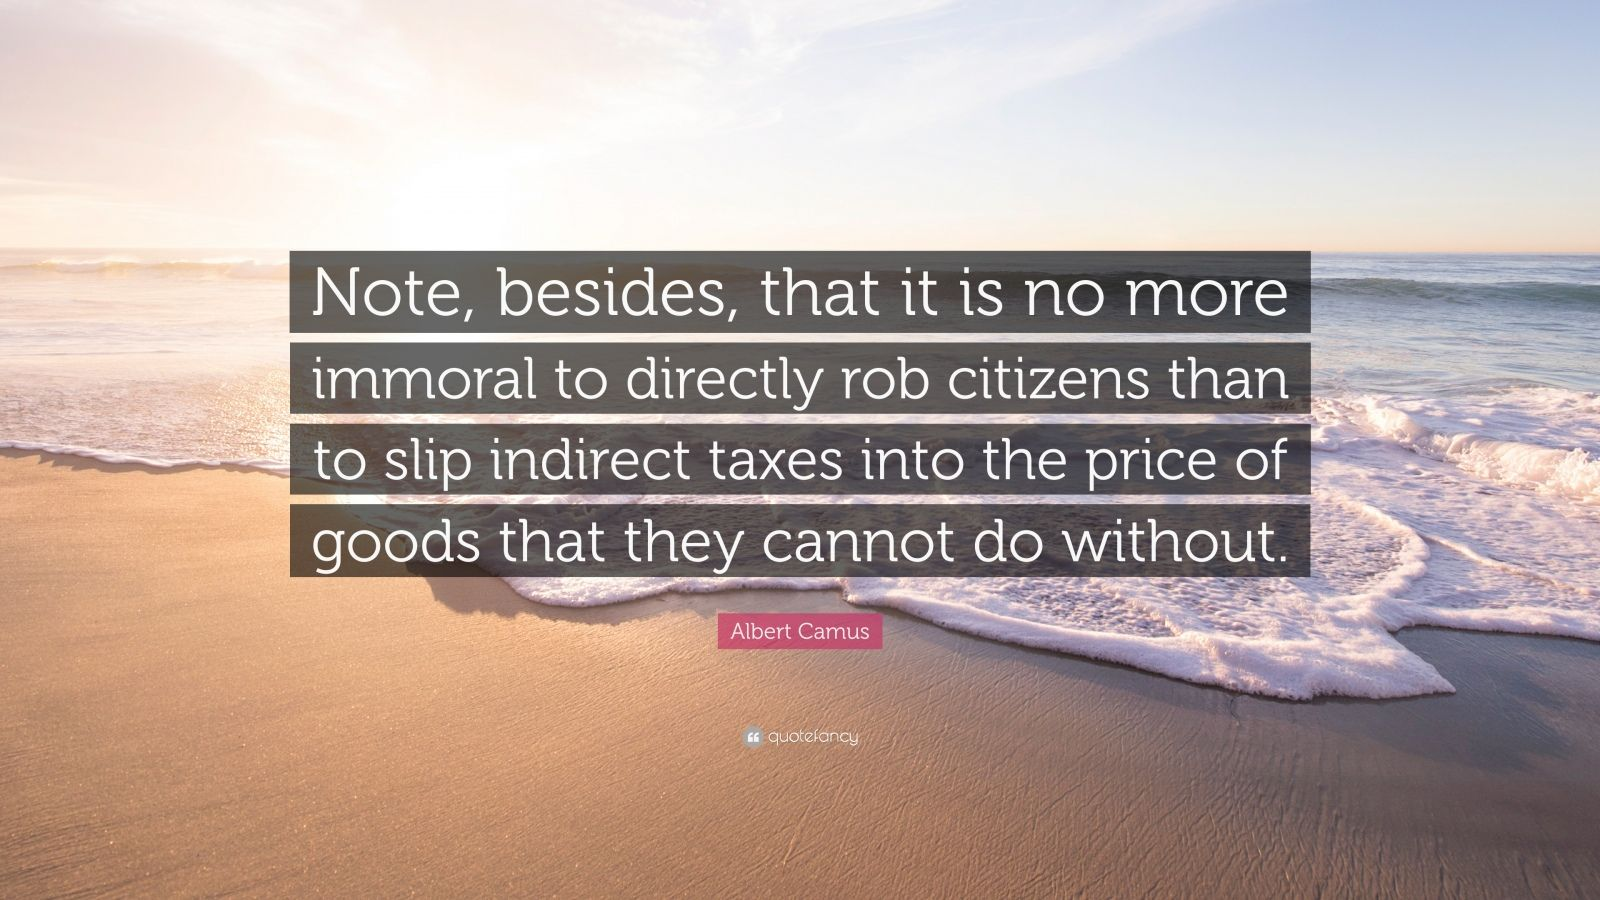 """Albert Camus Quote: """"Note, besides, that it is no more immoral to directly rob citizens than to slip indirect taxes into the price of goods that they cannot do without."""""""